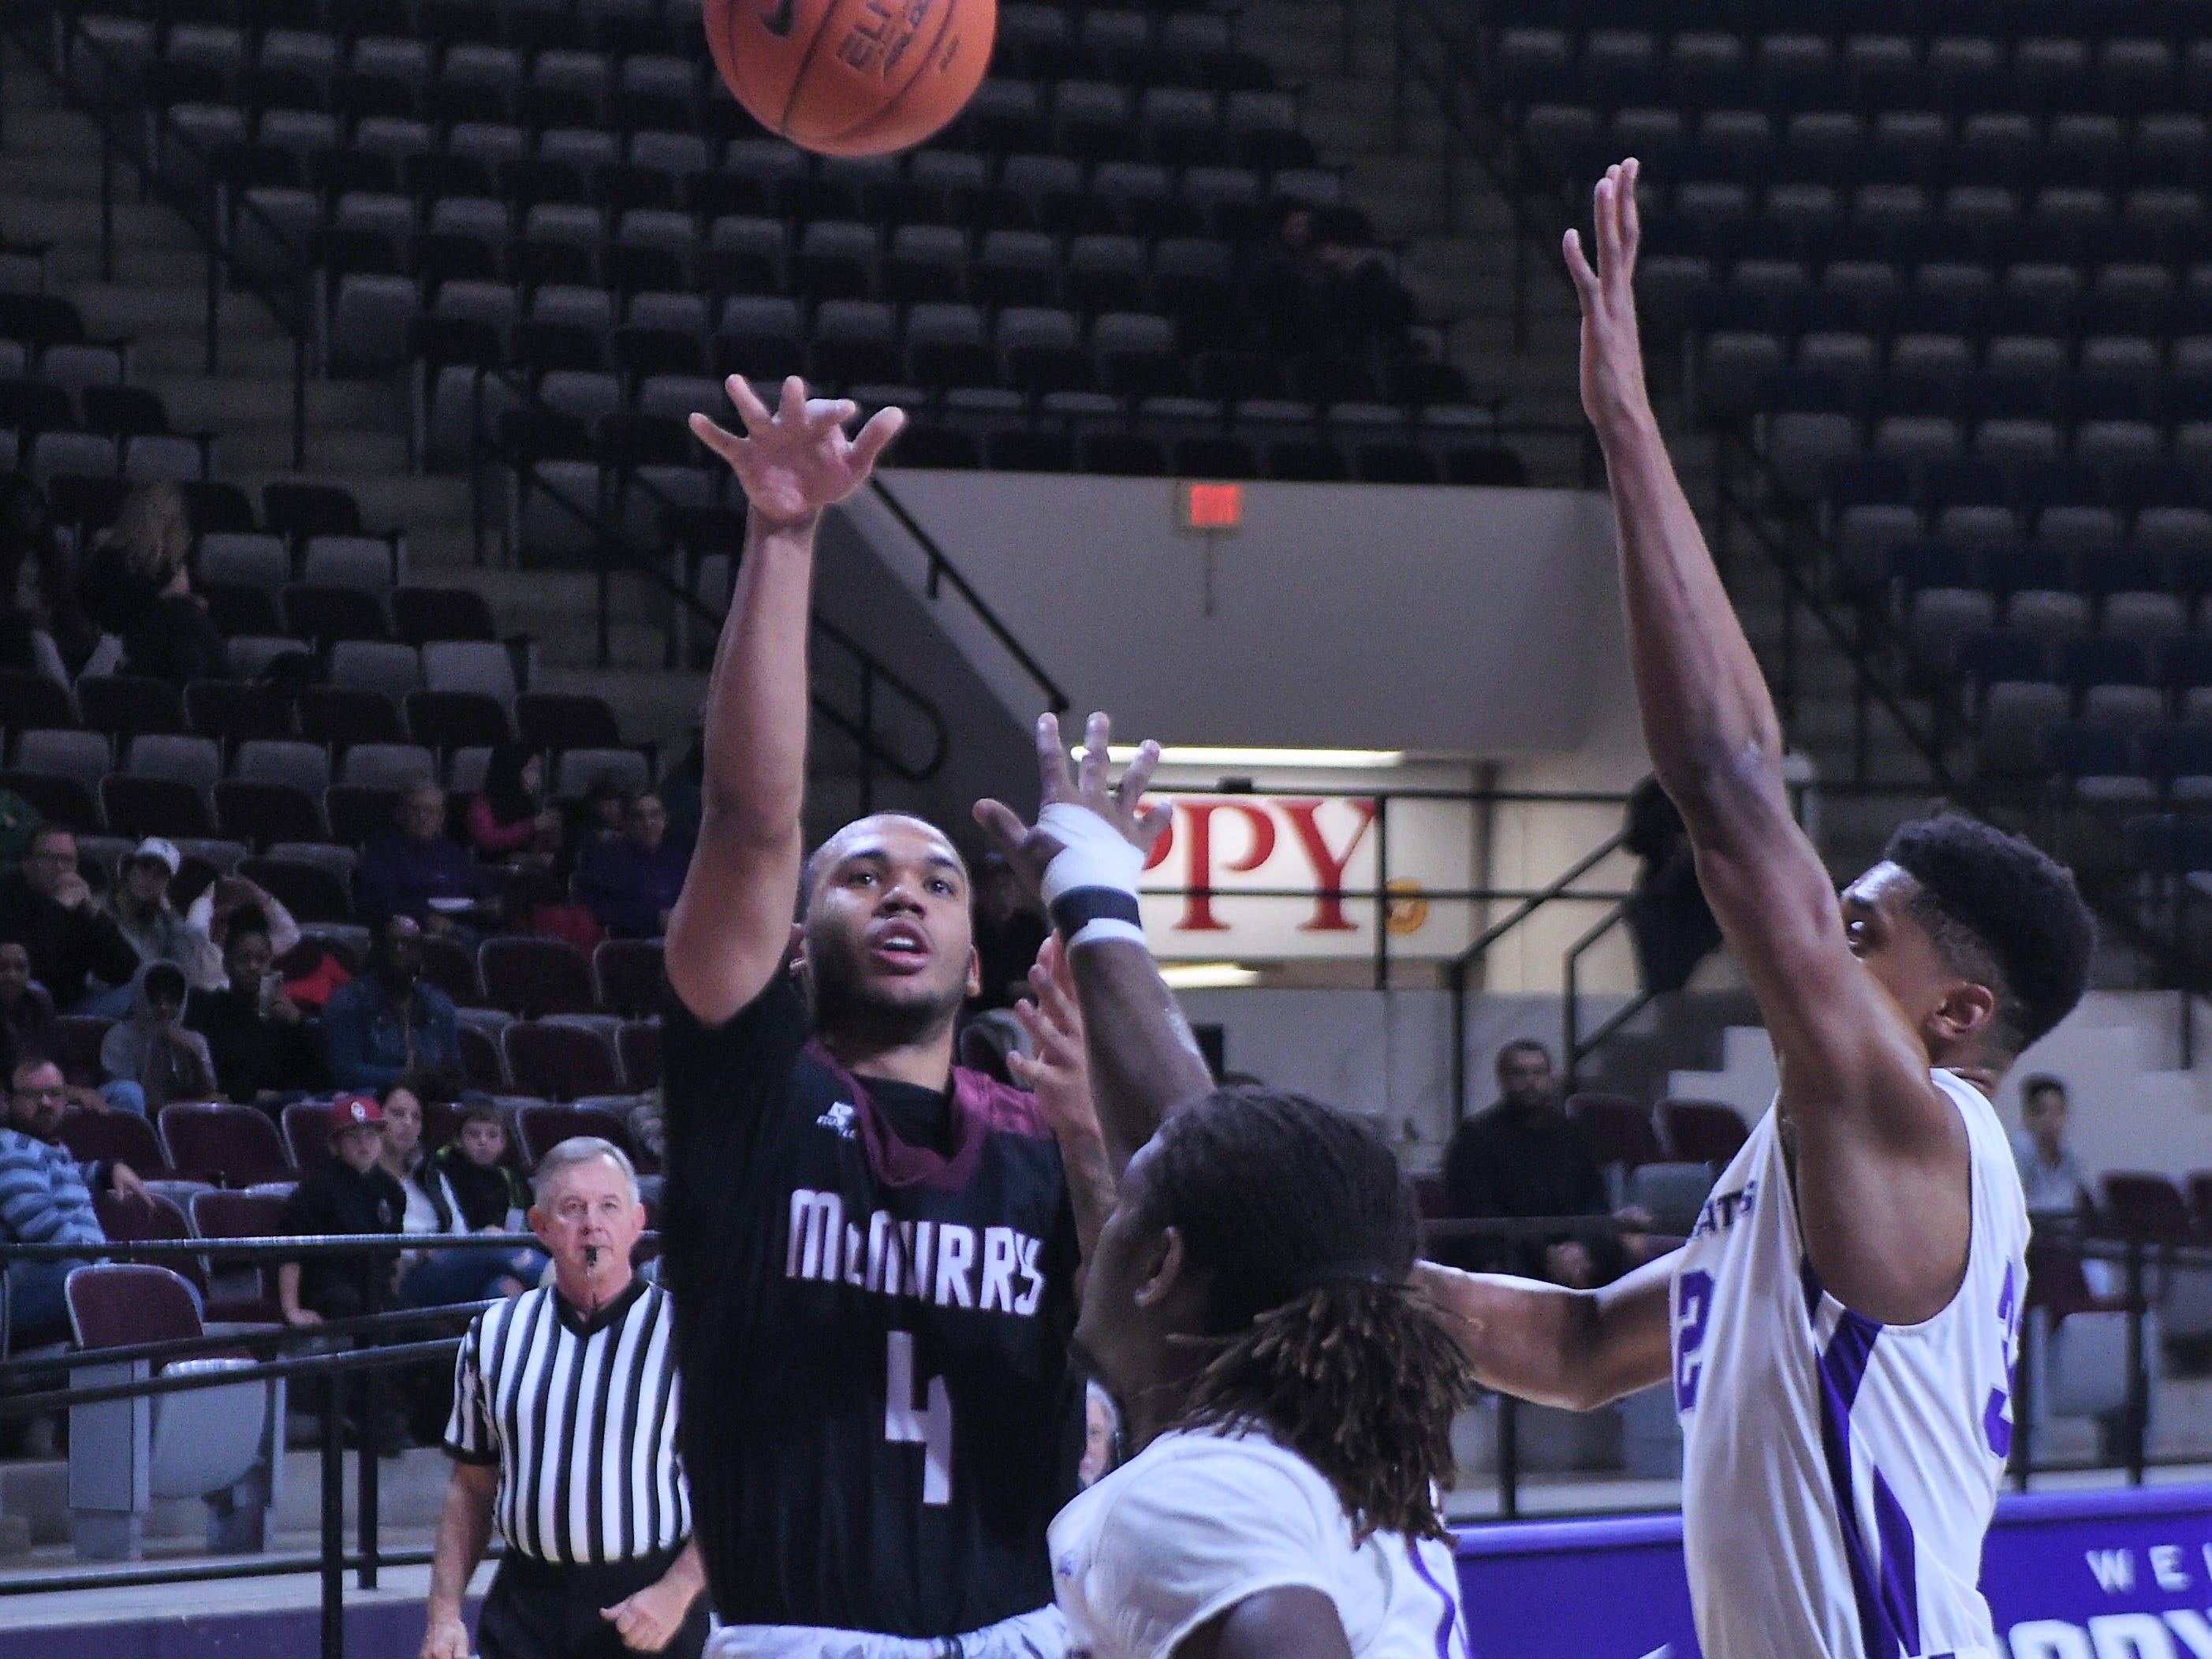 McMurry's Colin Taylor (4) puts up a shot over a pair of ACU defenders during Saturday's game at Moody Coliseum.